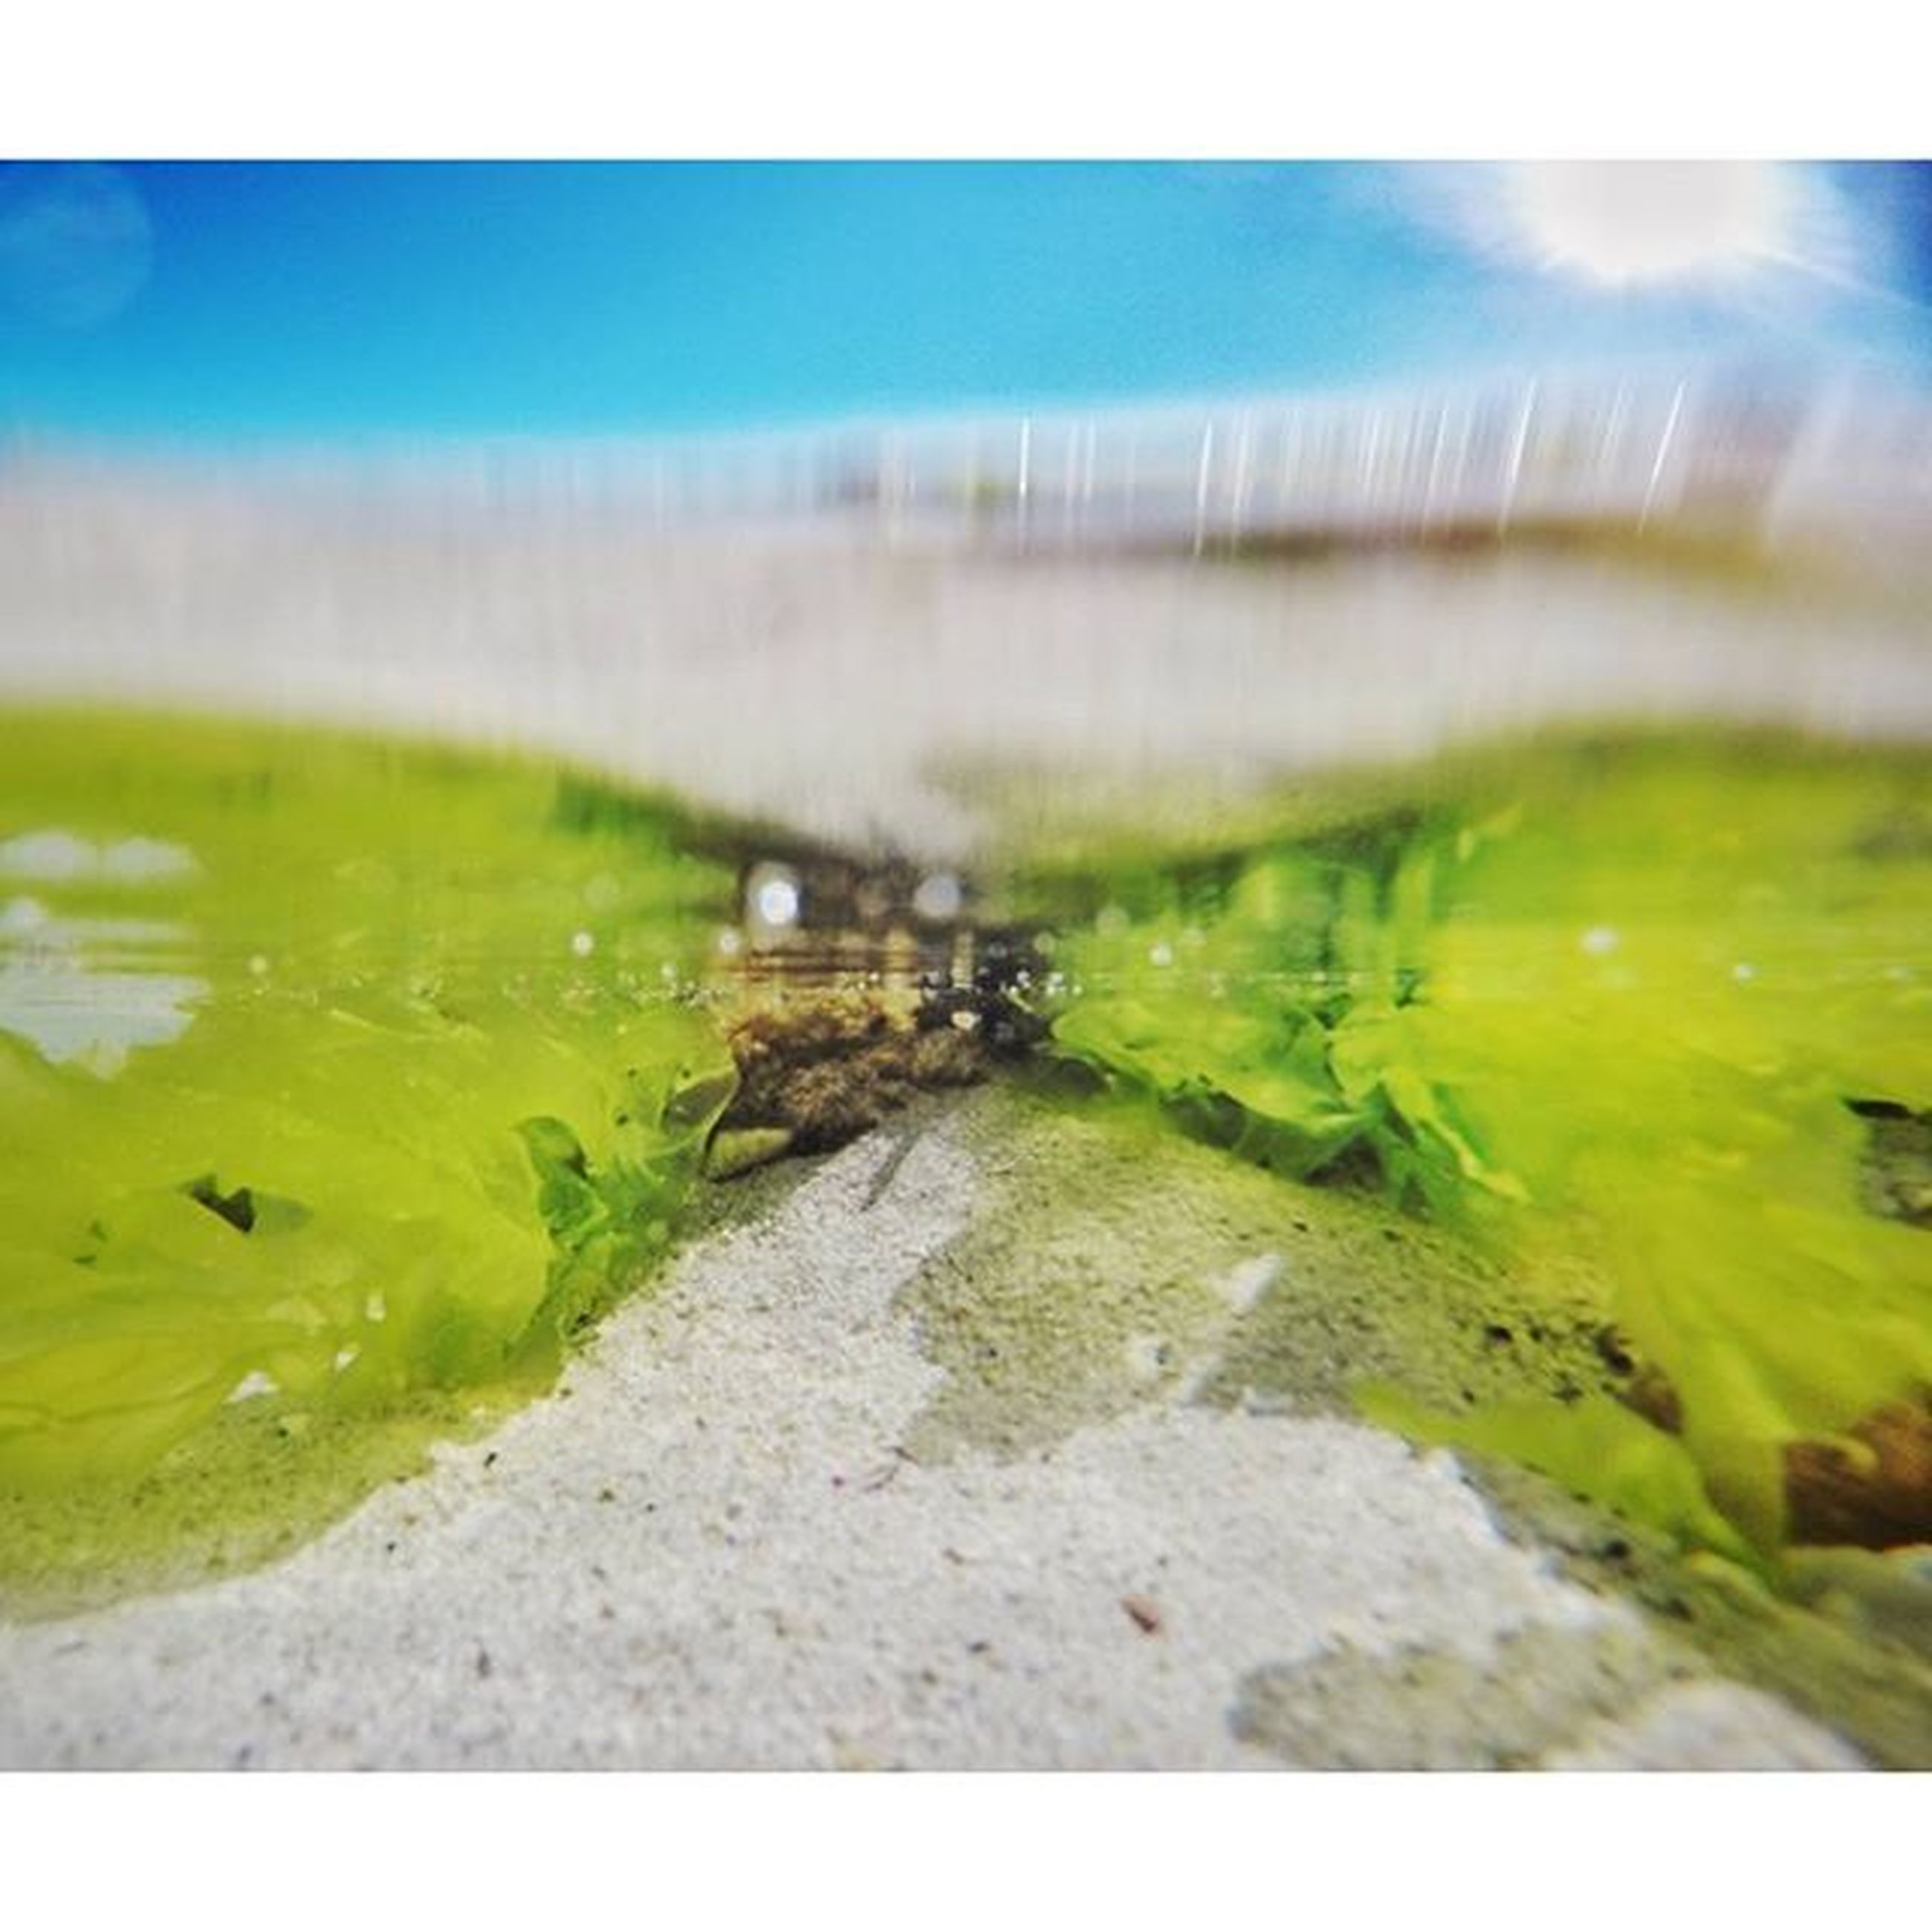 water, green color, selective focus, grass, close-up, reflection, wet, nature, pond, auto post production filter, no people, day, outdoors, surface level, transfer print, waterfront, river, motion, lake, high angle view